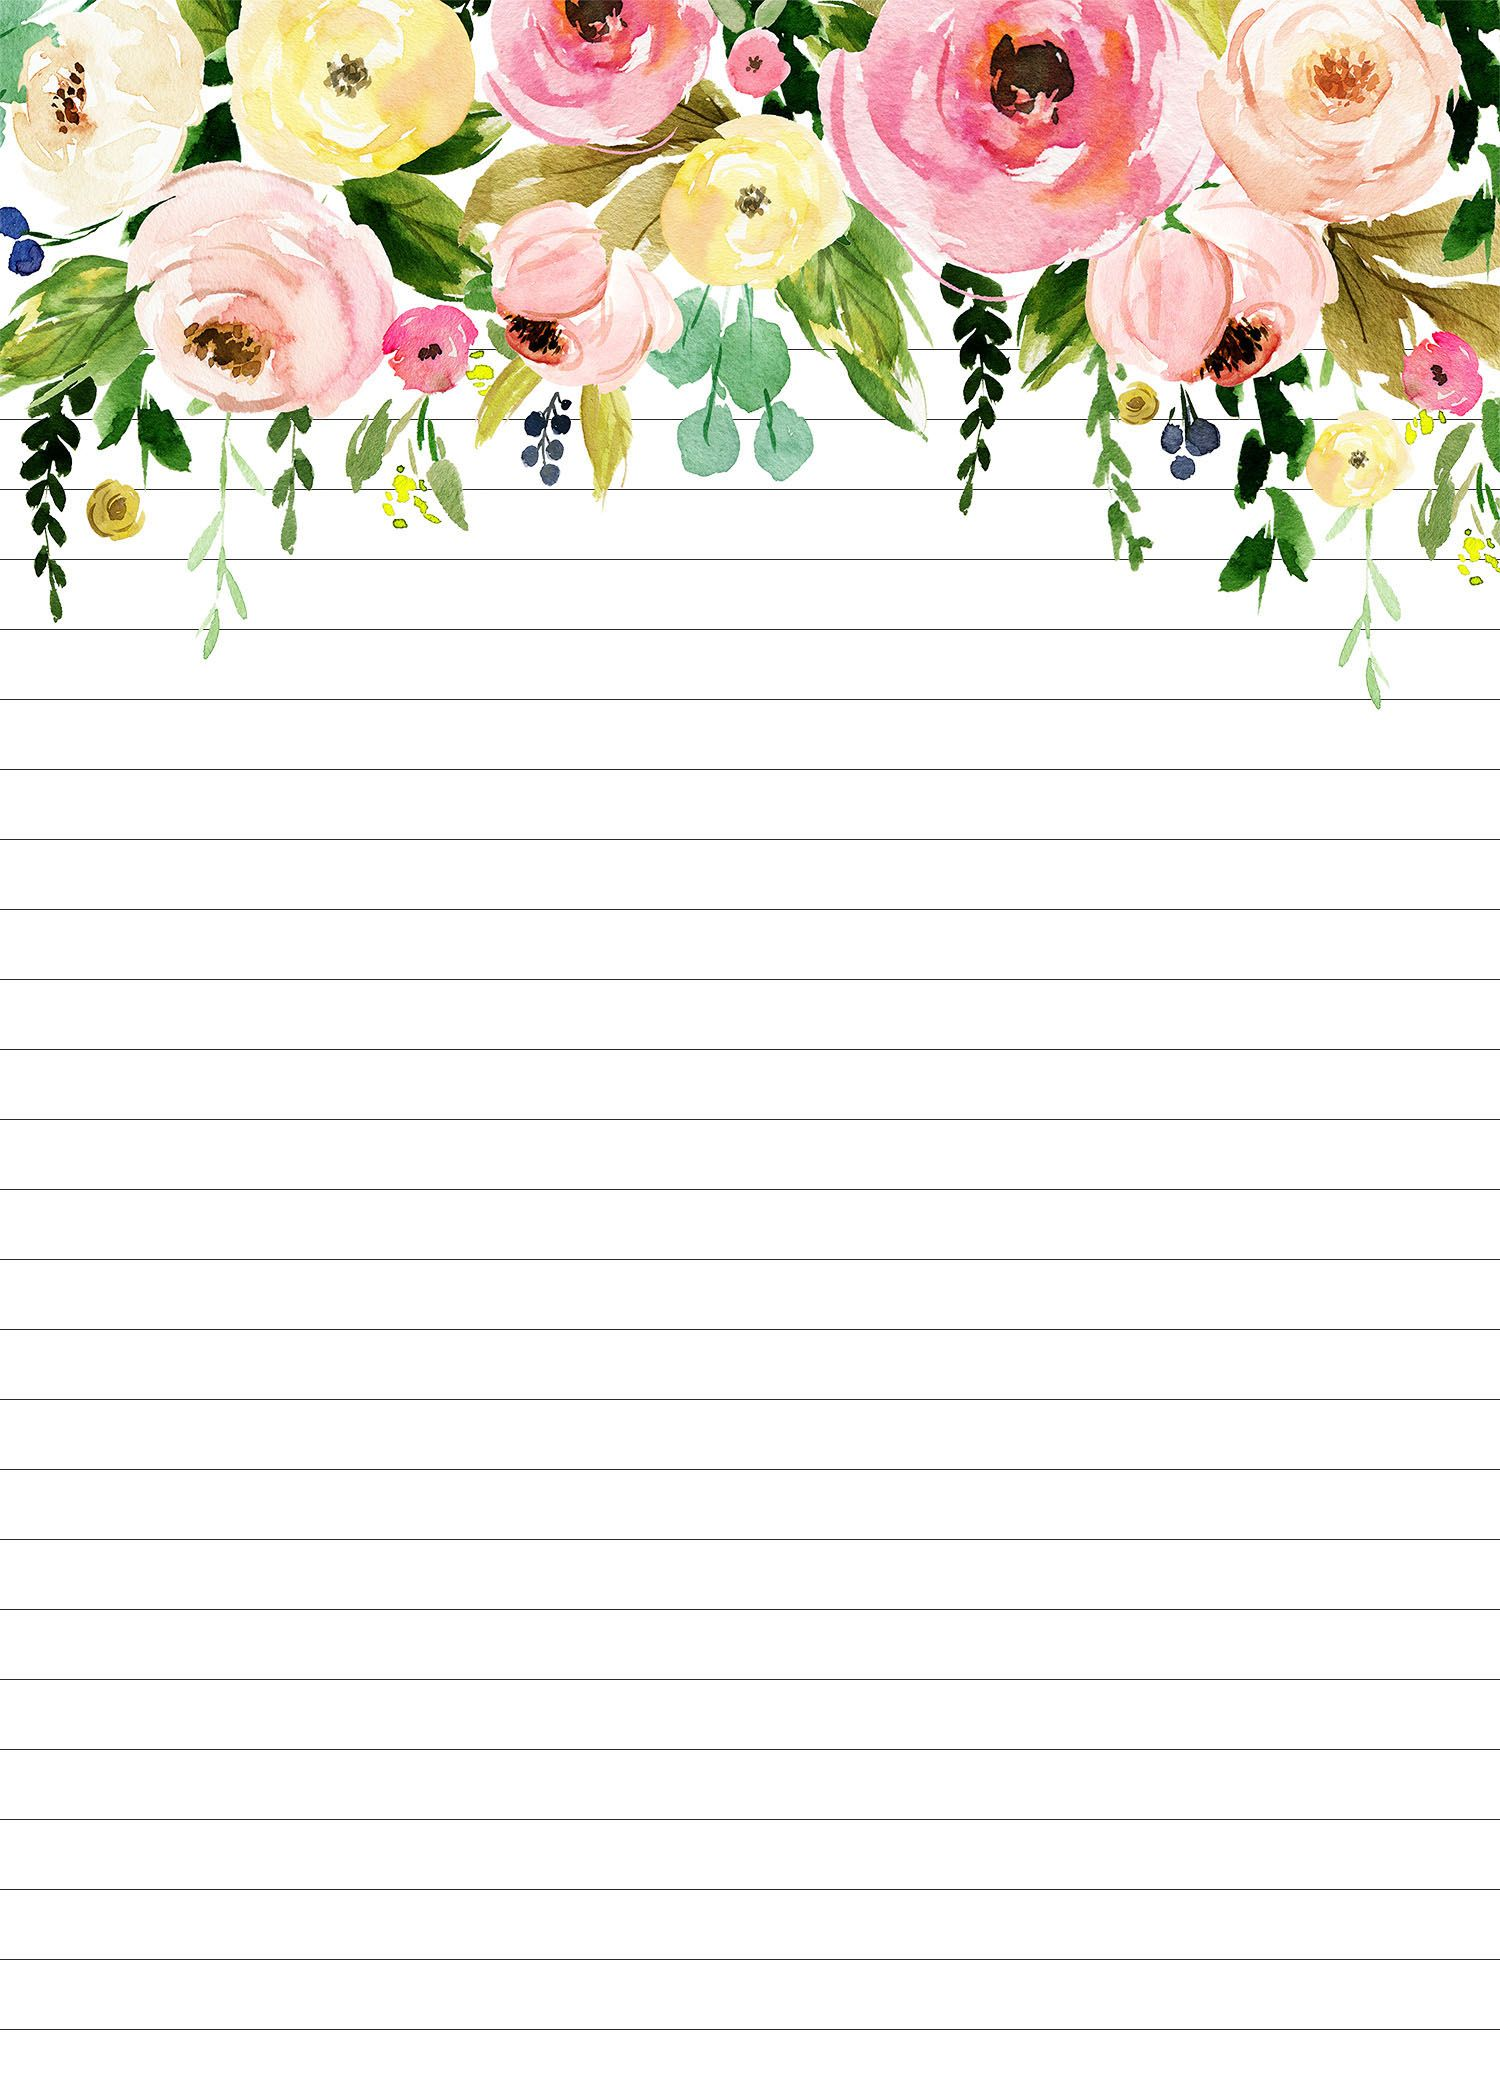 Free Printable 2020 5x7 Pretty Floral Calendar /// with Bonus To-Do List Shopping List and Note Pad!! - The Cottage Market